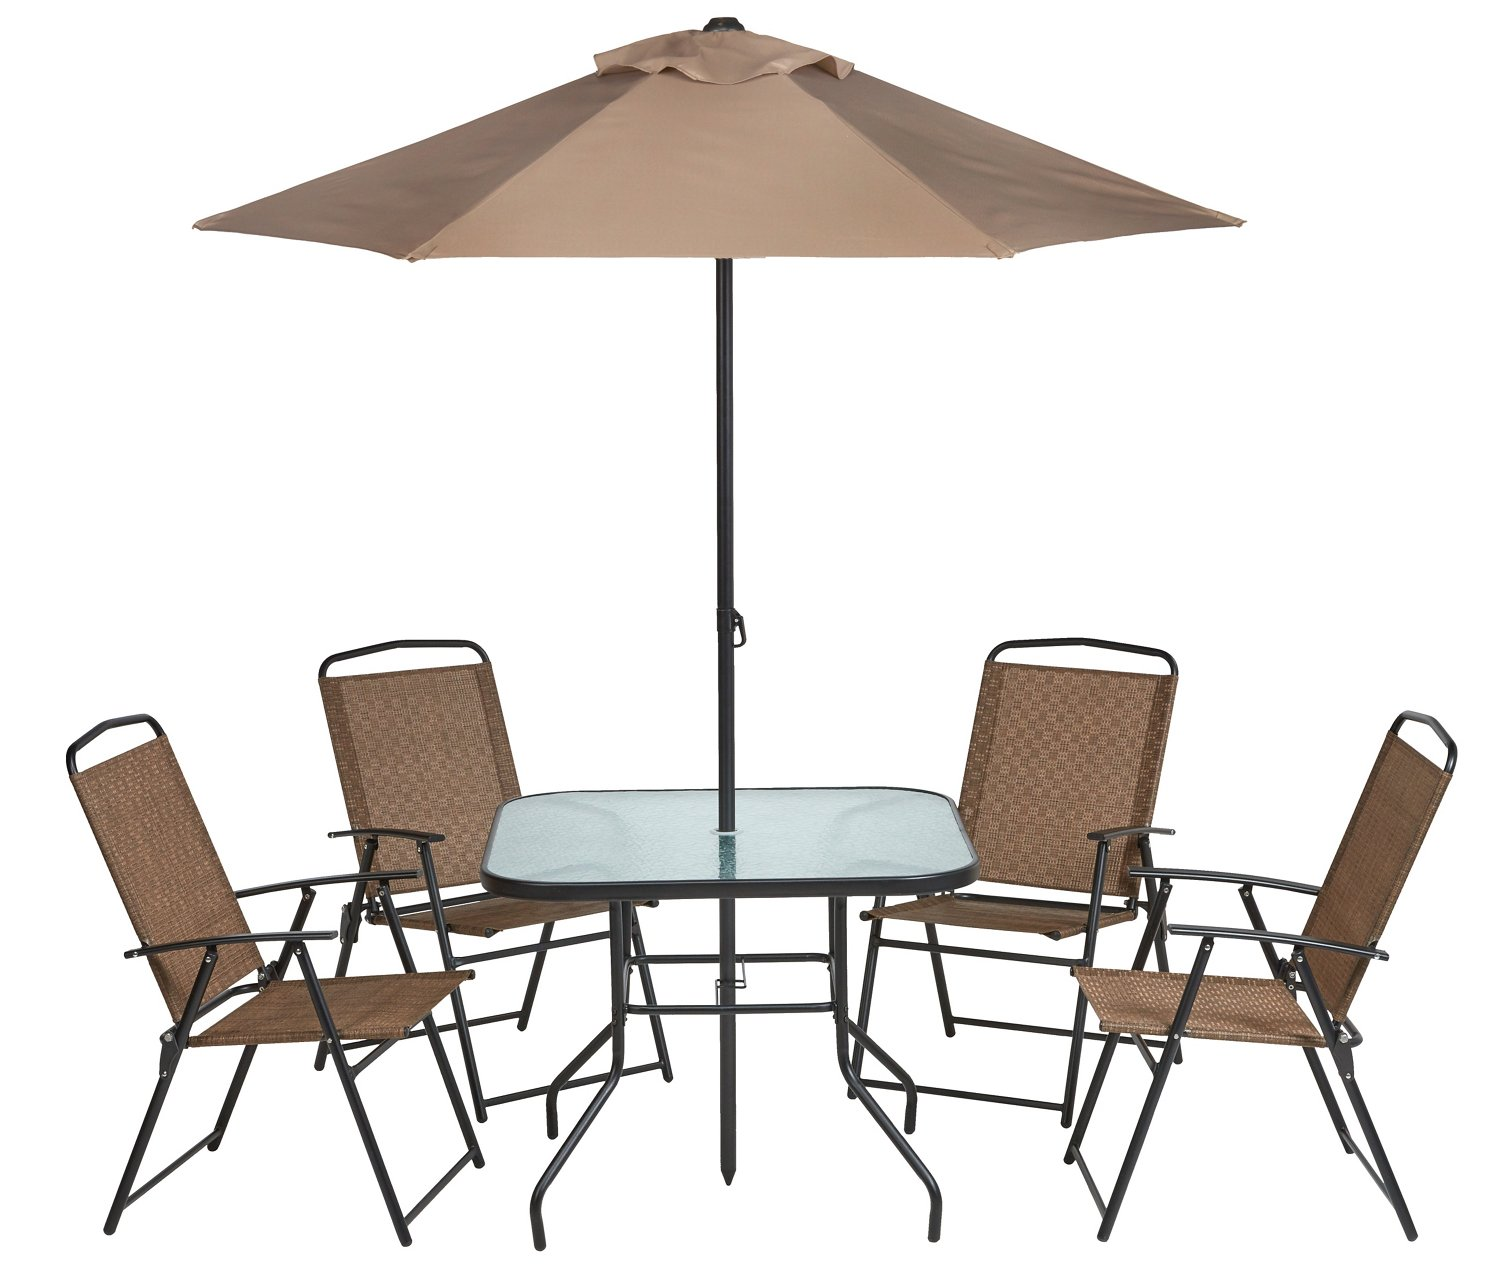 Display product reviews for Mosaic 6-Piece Dining Set - Patio Sets Patio Furniture Sets, Patio Chairs, Patio Tables Academy